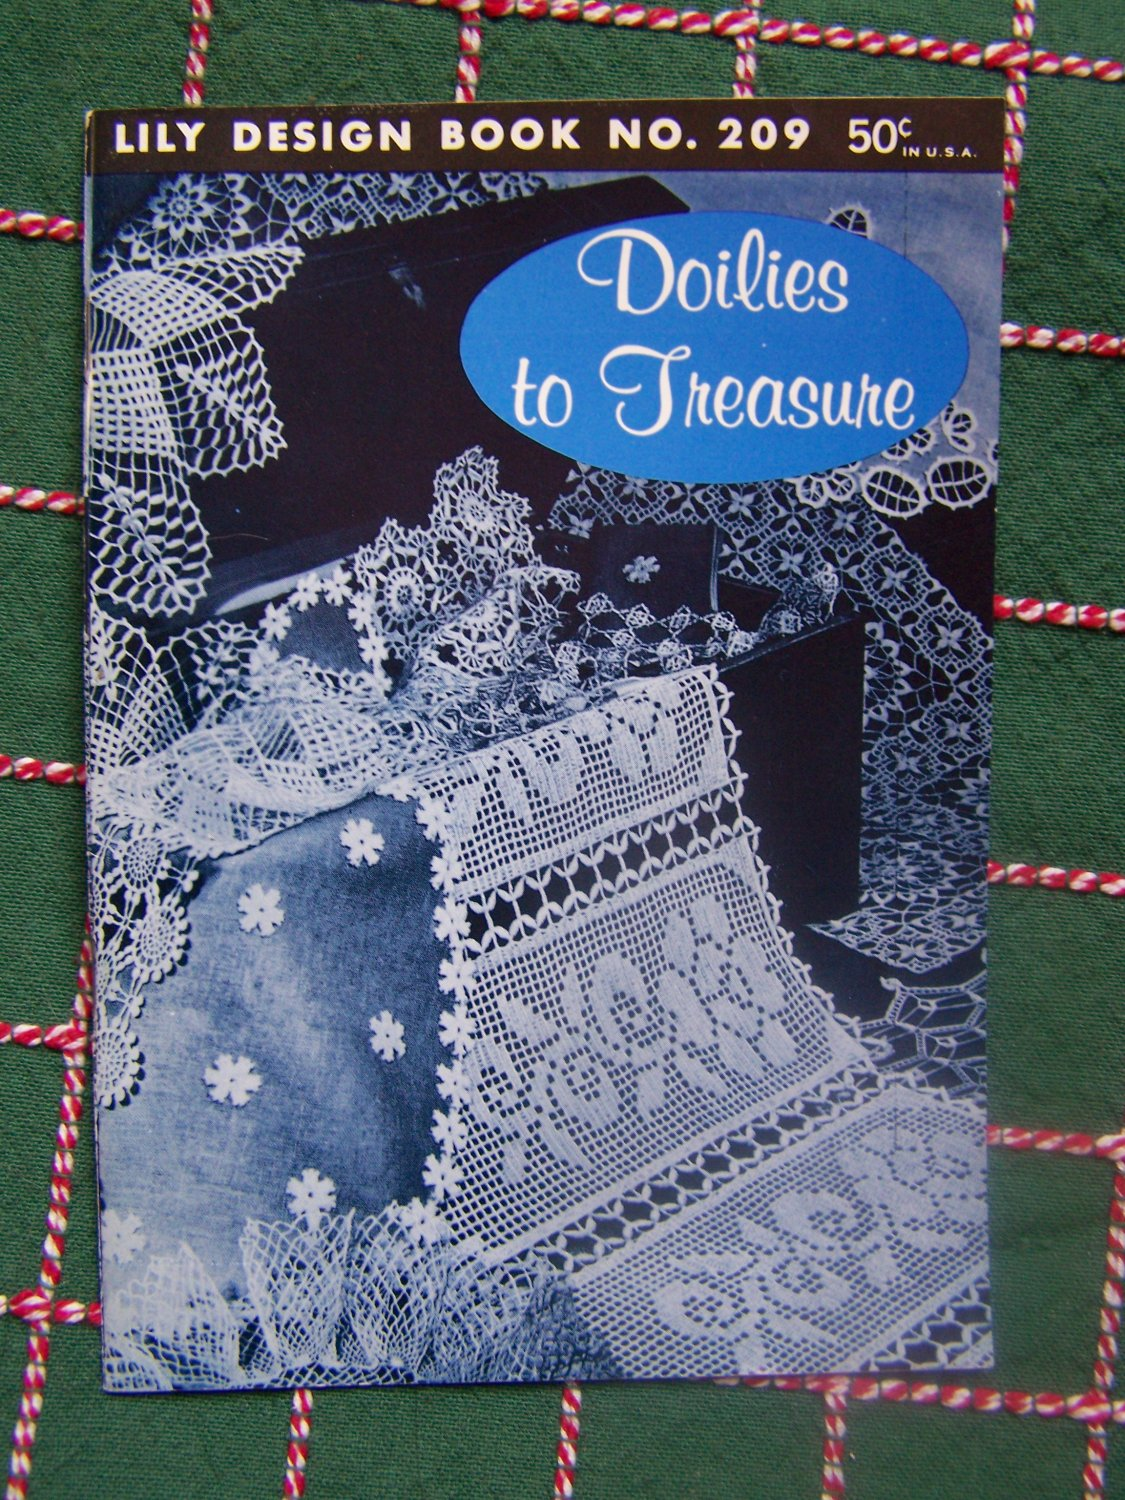 New Vintage Lily Crochet Book 209 Doilies to Treasure